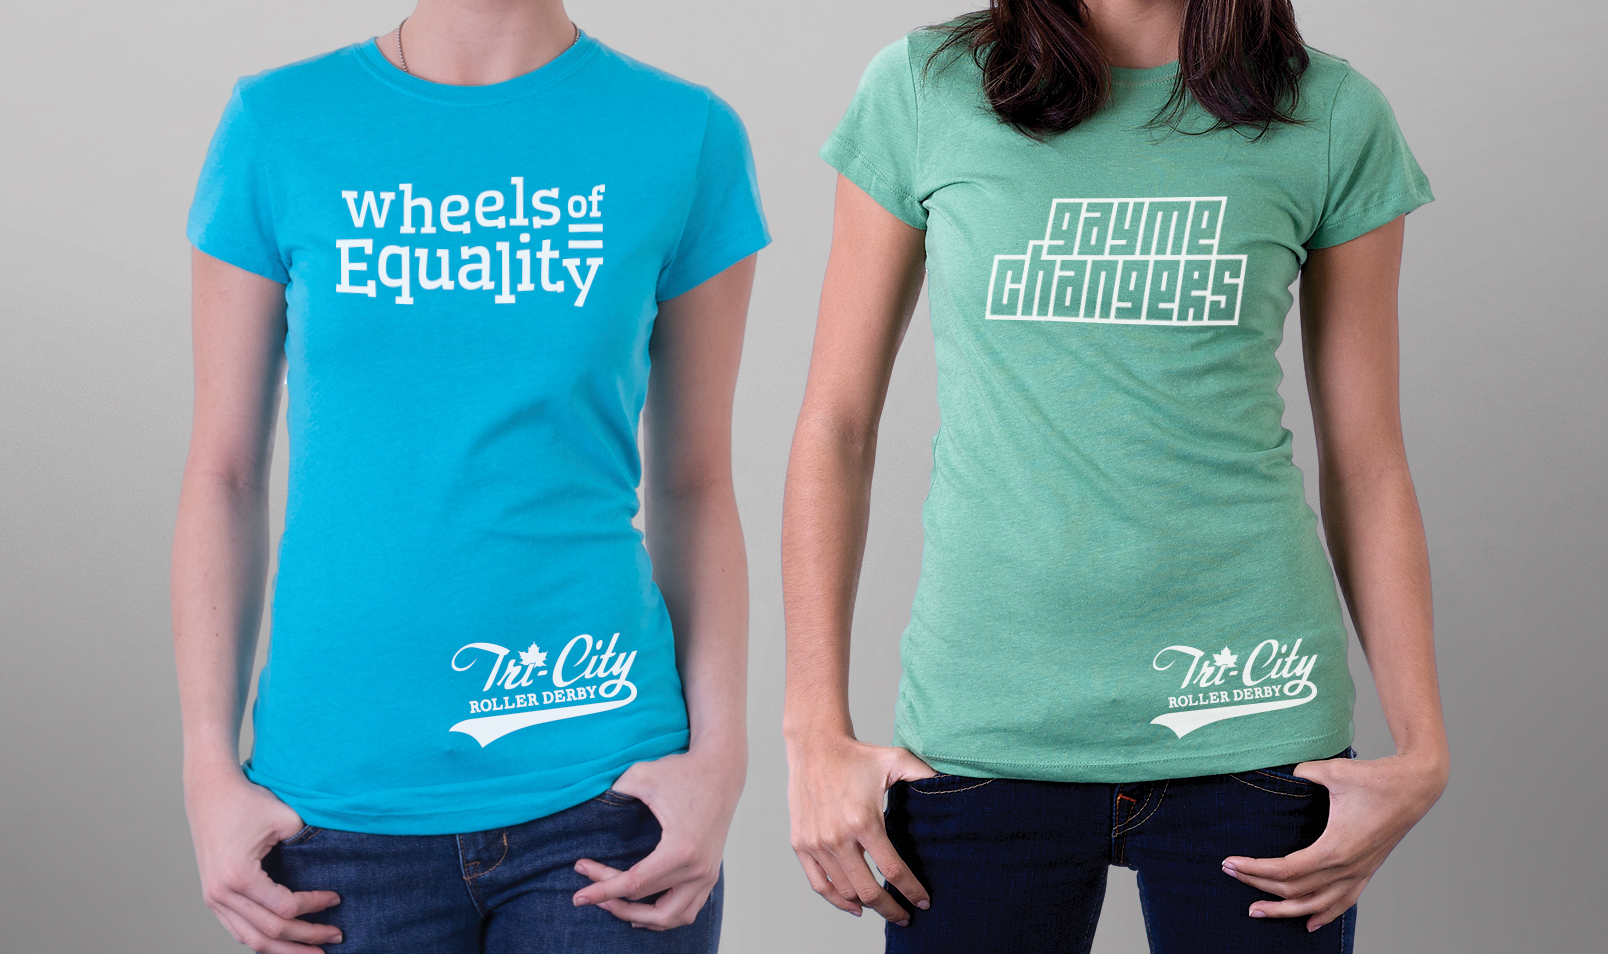 tshirts reading 'wheels of equality' and 'gayme changers'